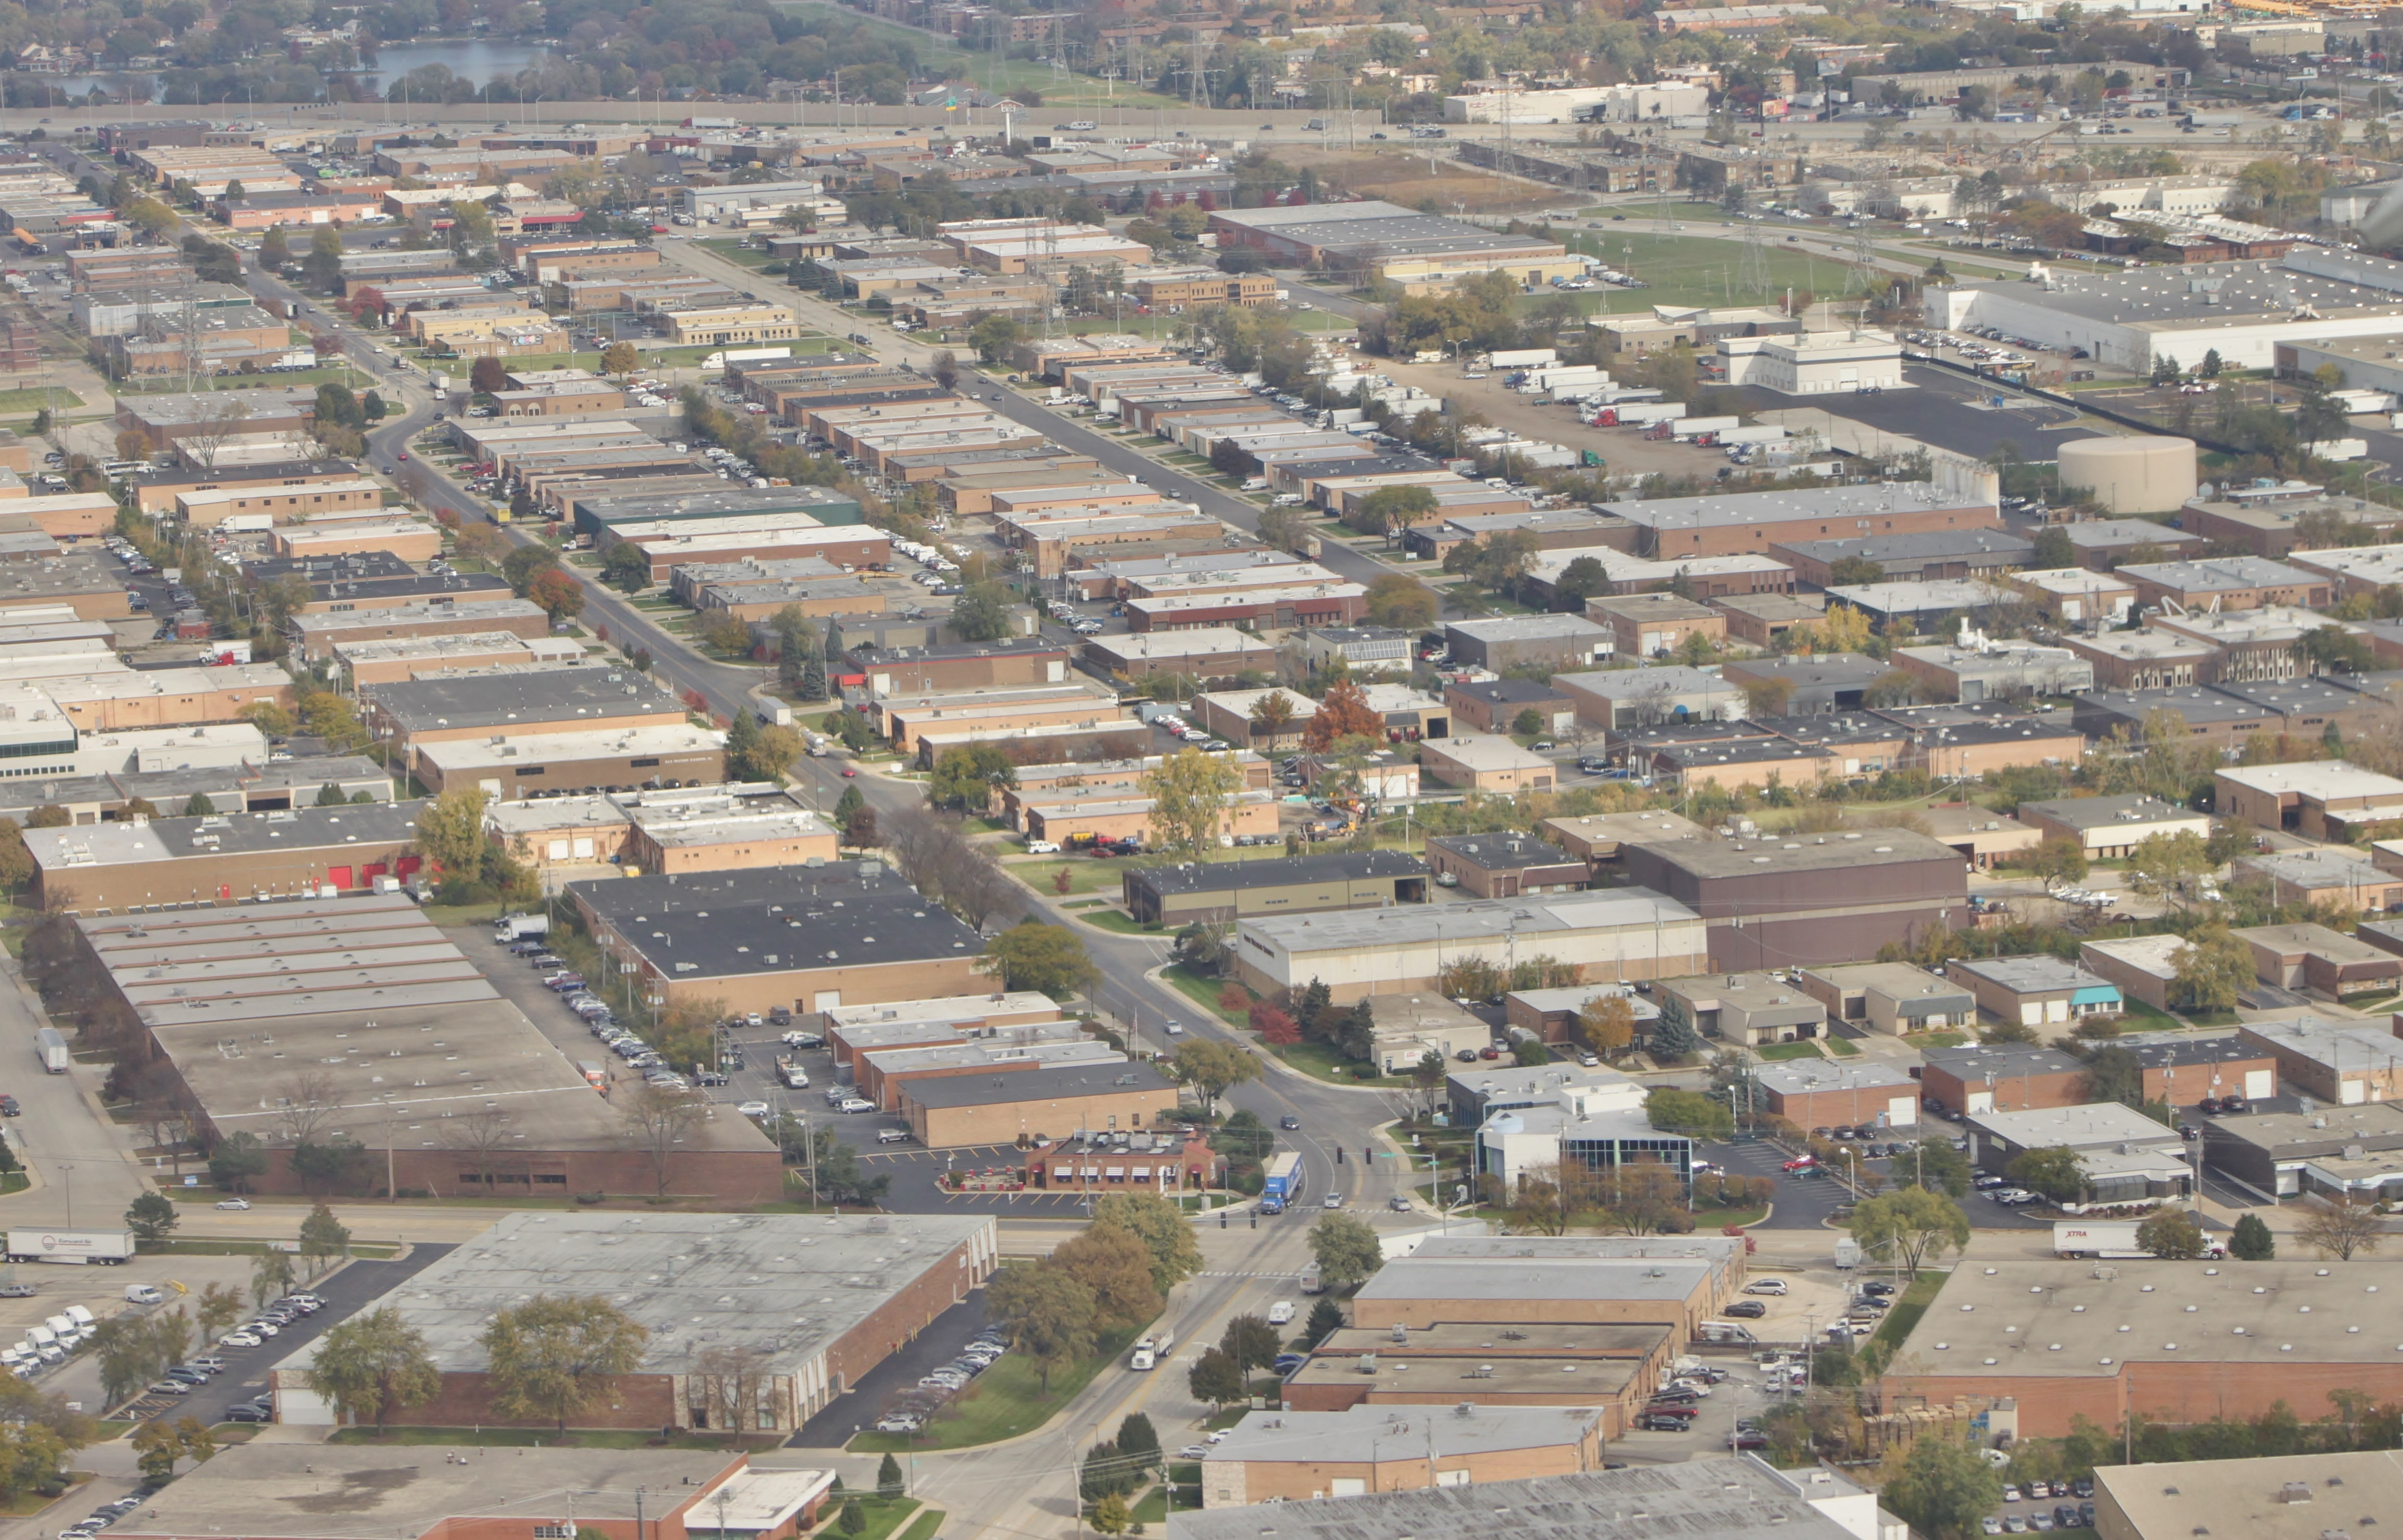 Aerial view of the Elk Grove Village industrial area